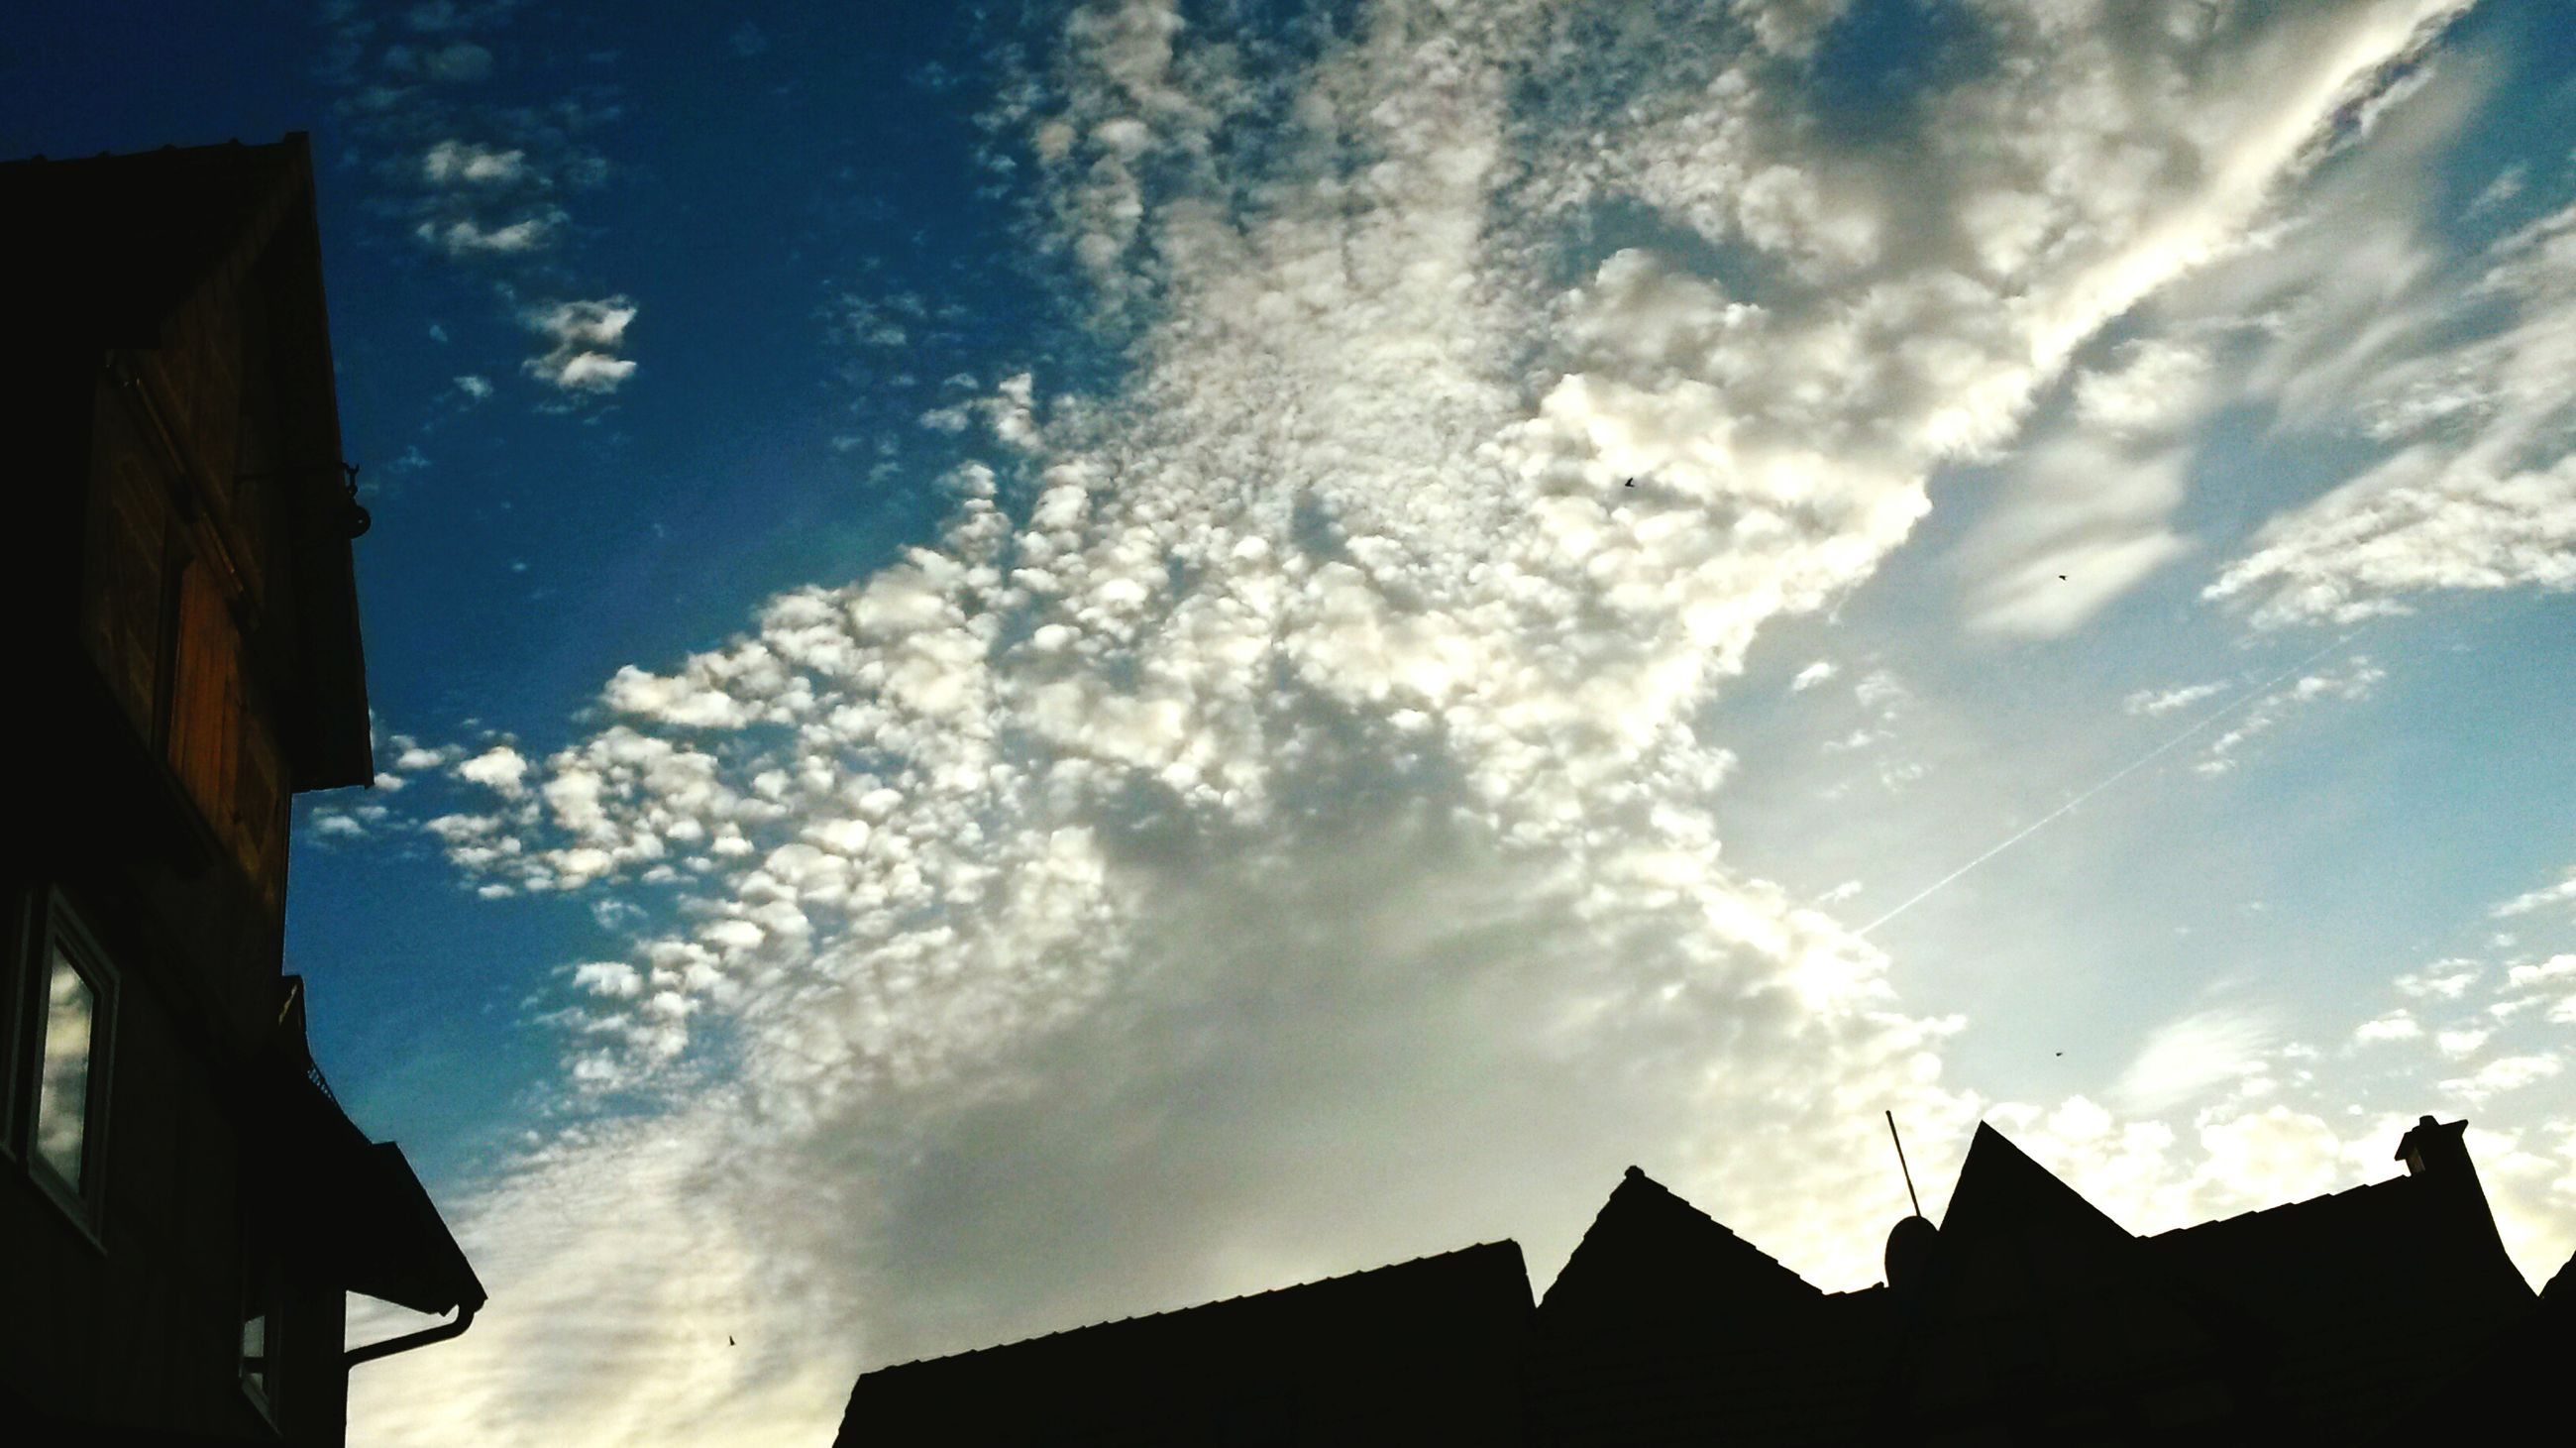 building exterior, architecture, built structure, low angle view, sky, cloud - sky, house, high section, residential structure, cloud, residential building, building, silhouette, blue, outdoors, roof, sunlight, nature, cloudy, no people